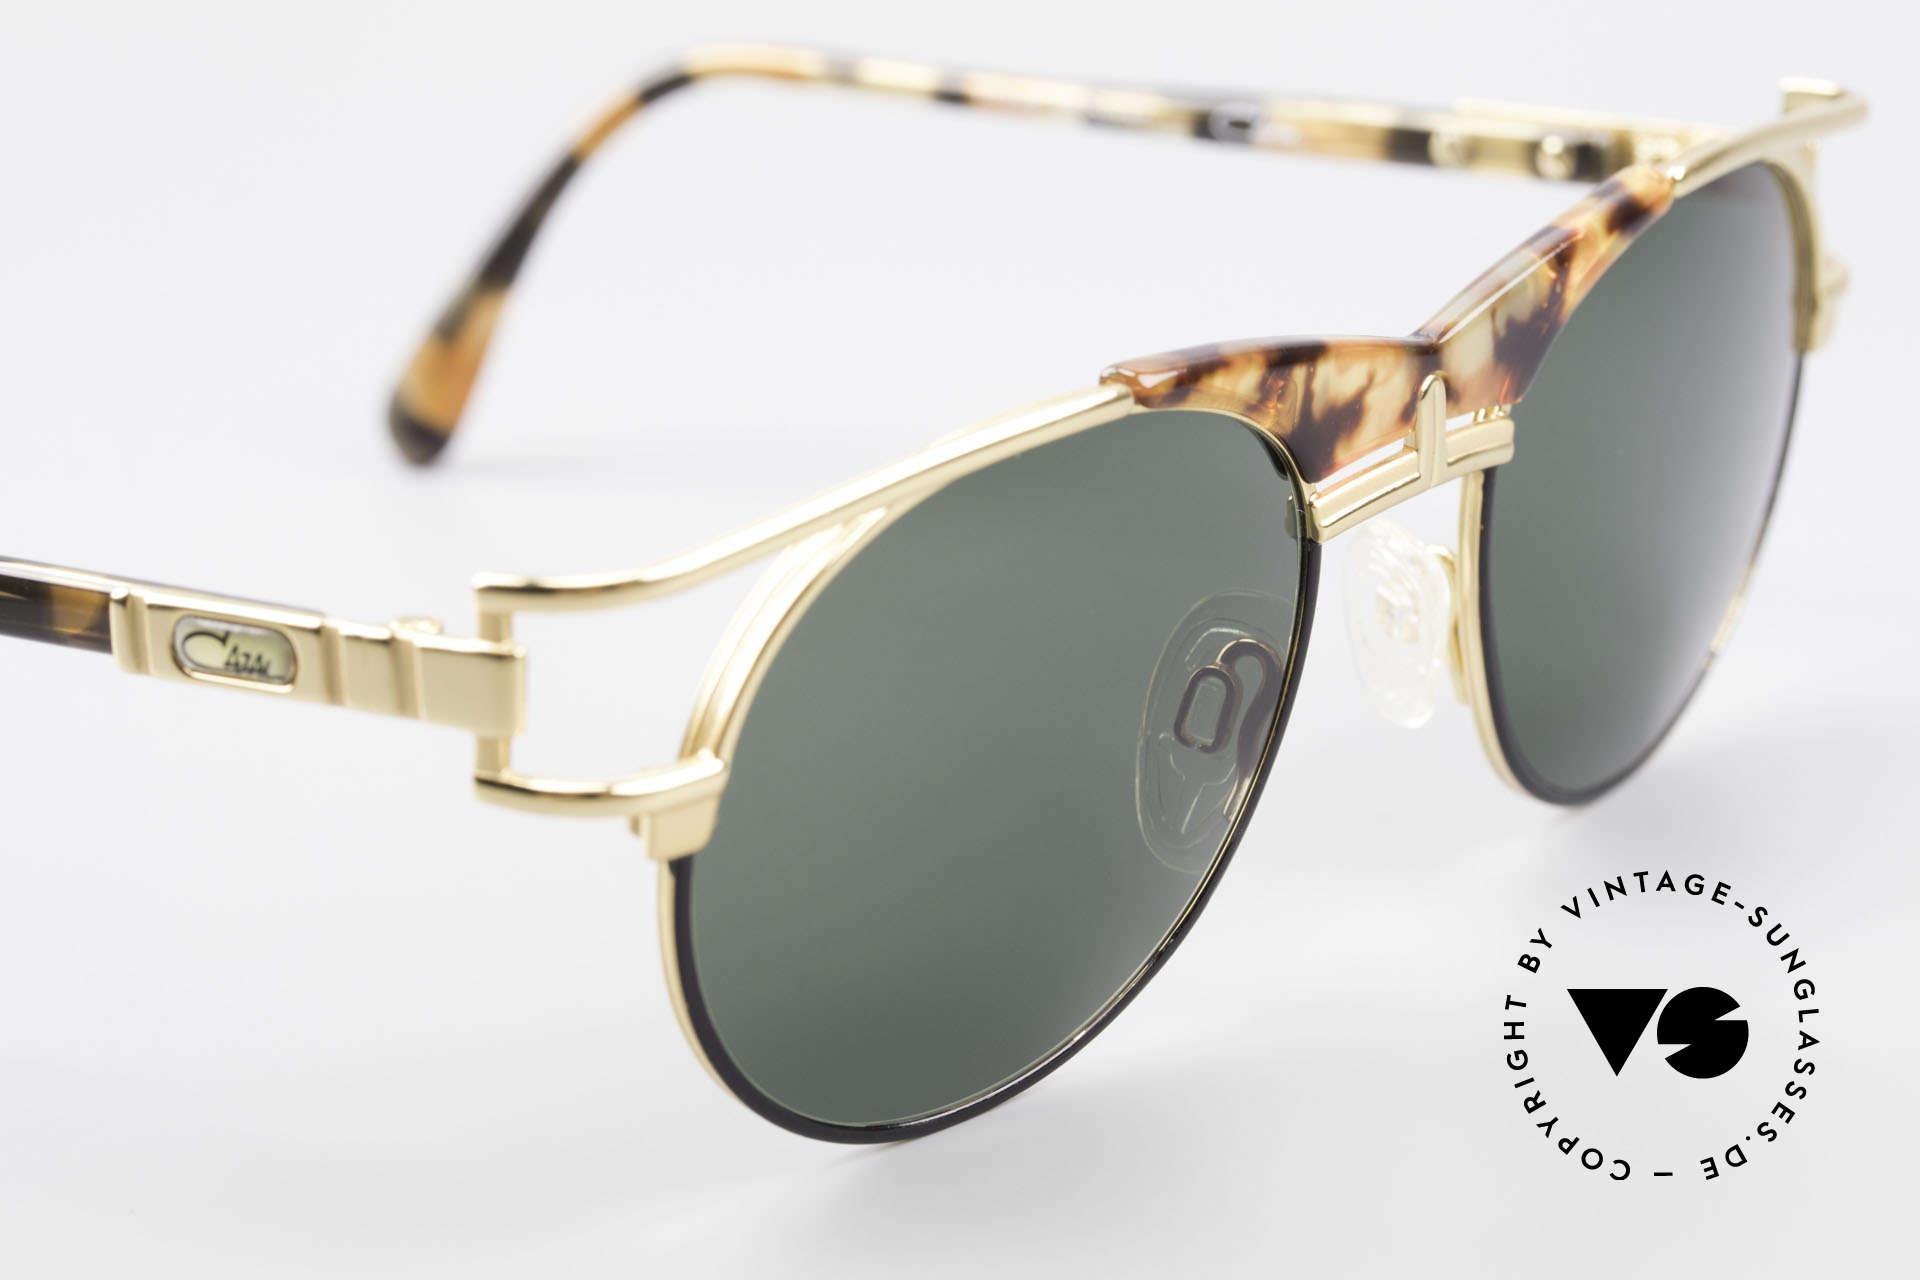 Cazal 244 Iconic 90's Vintage Sunglasses, NO RETRO shades, but a 25 years old ORIGINAL!, Made for Men and Women